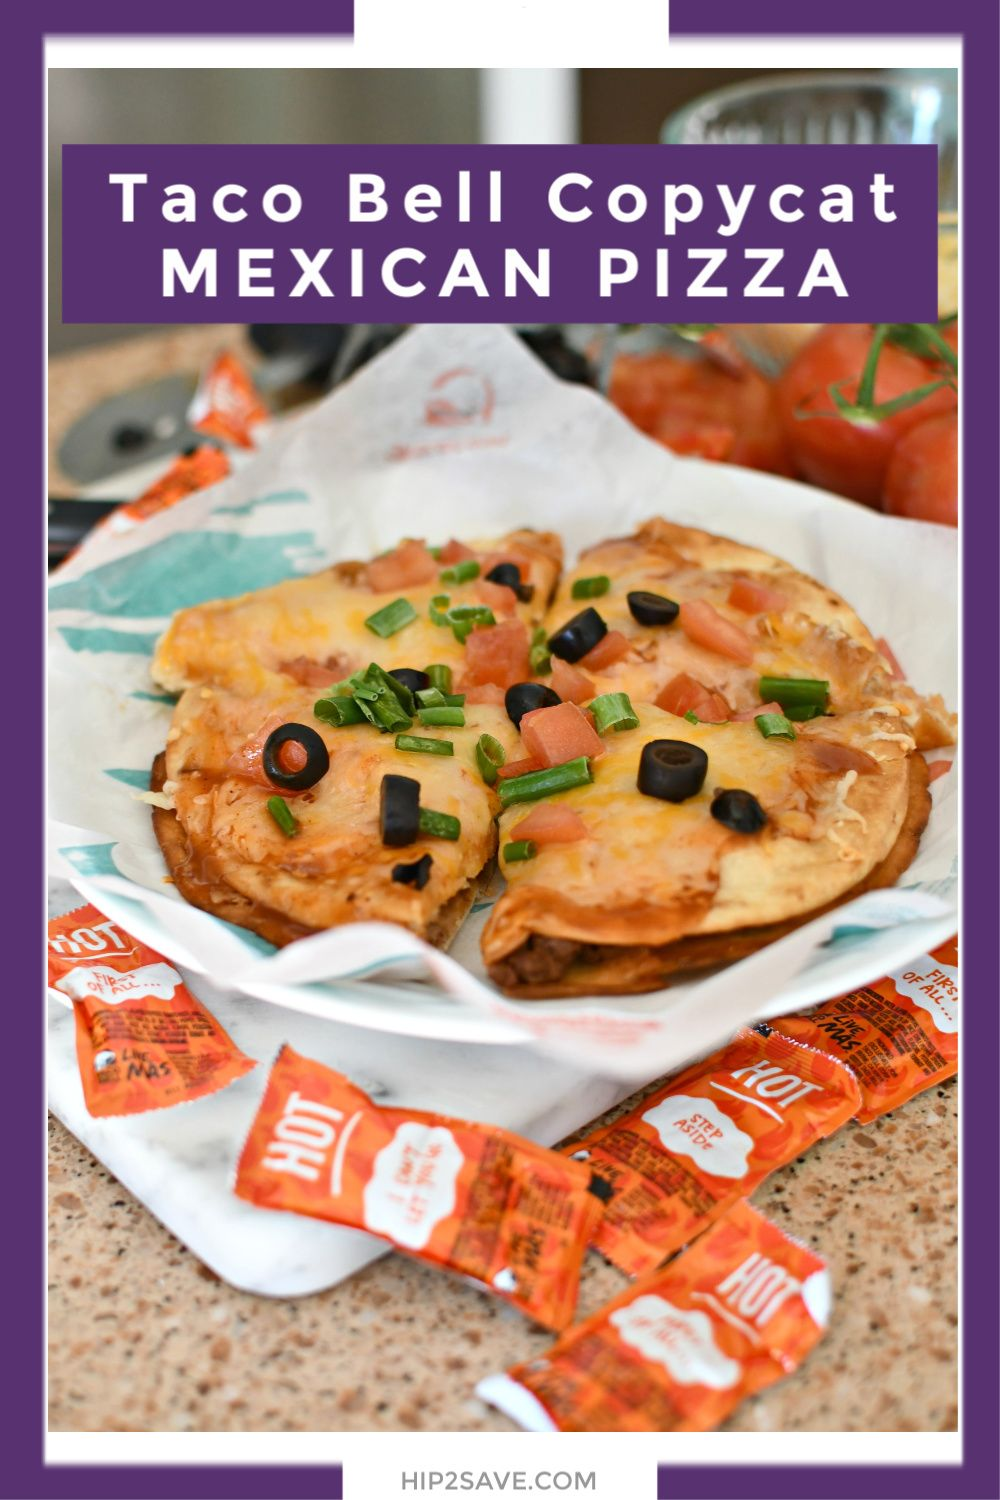 Skip the DriveThru and Make Your Own Taco Bell Mexican